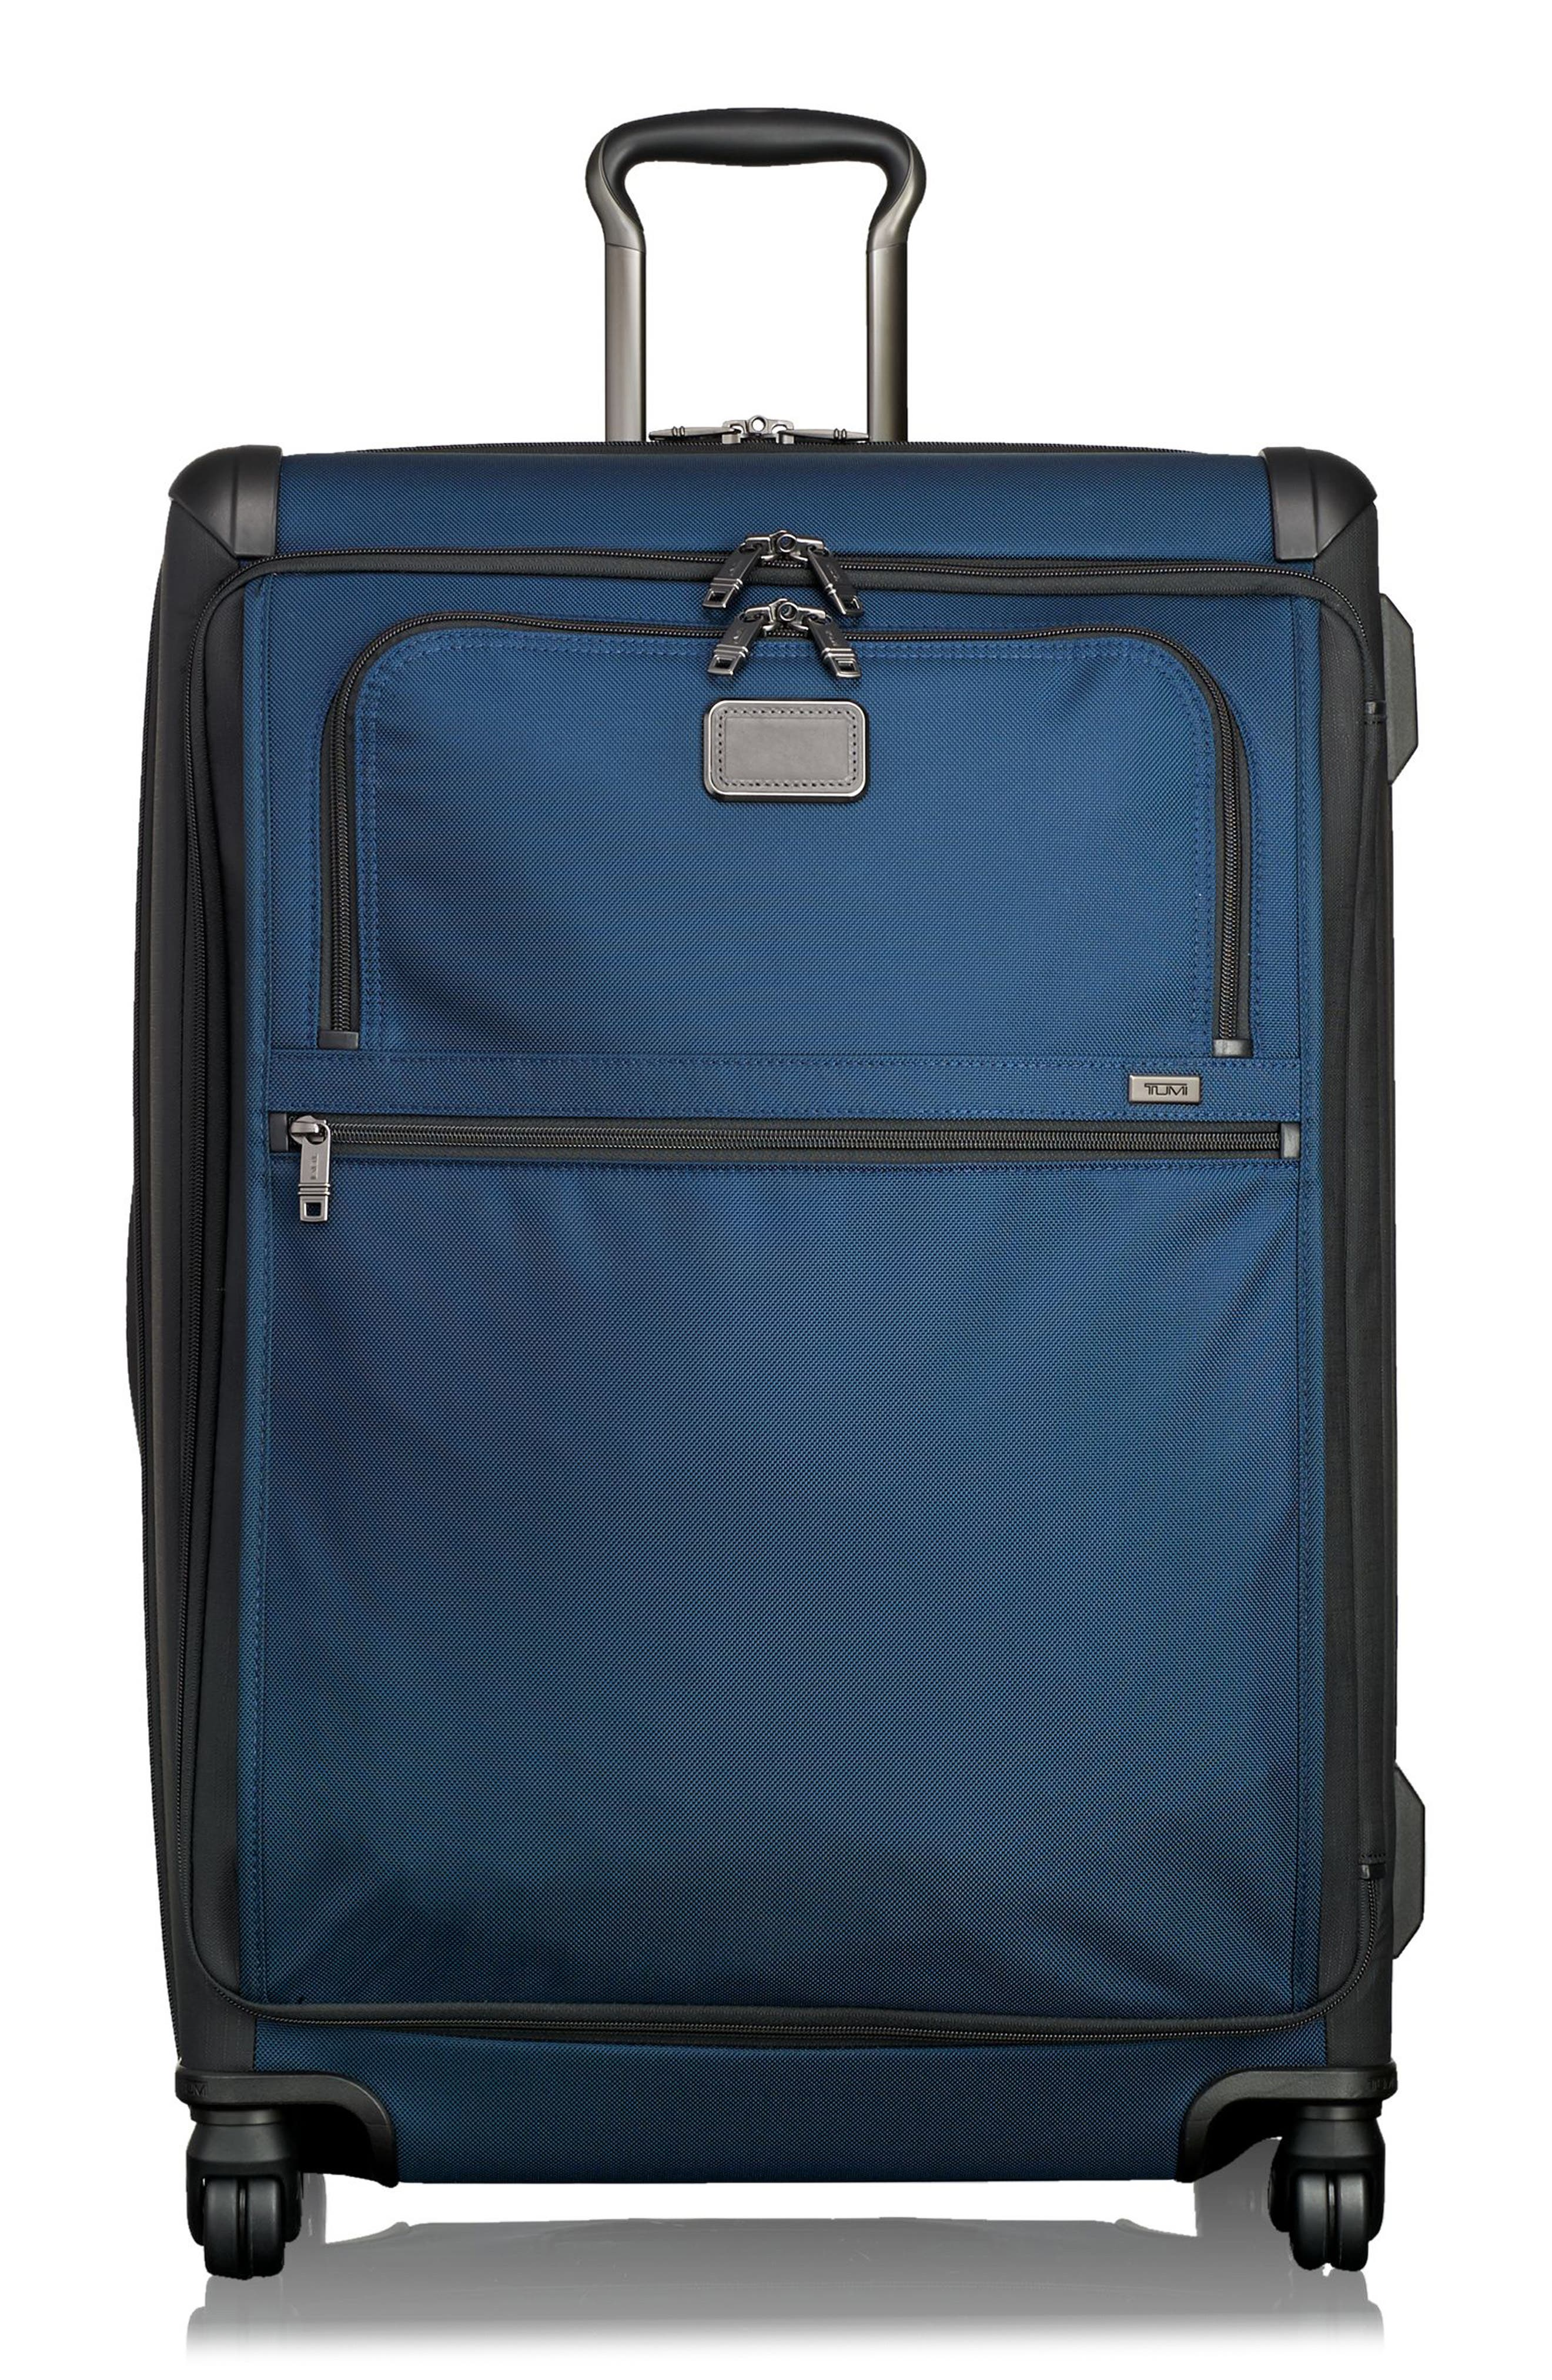 Tumi Alpha 2 Medium Trip 29-Inch Four-Wheel Packing Case